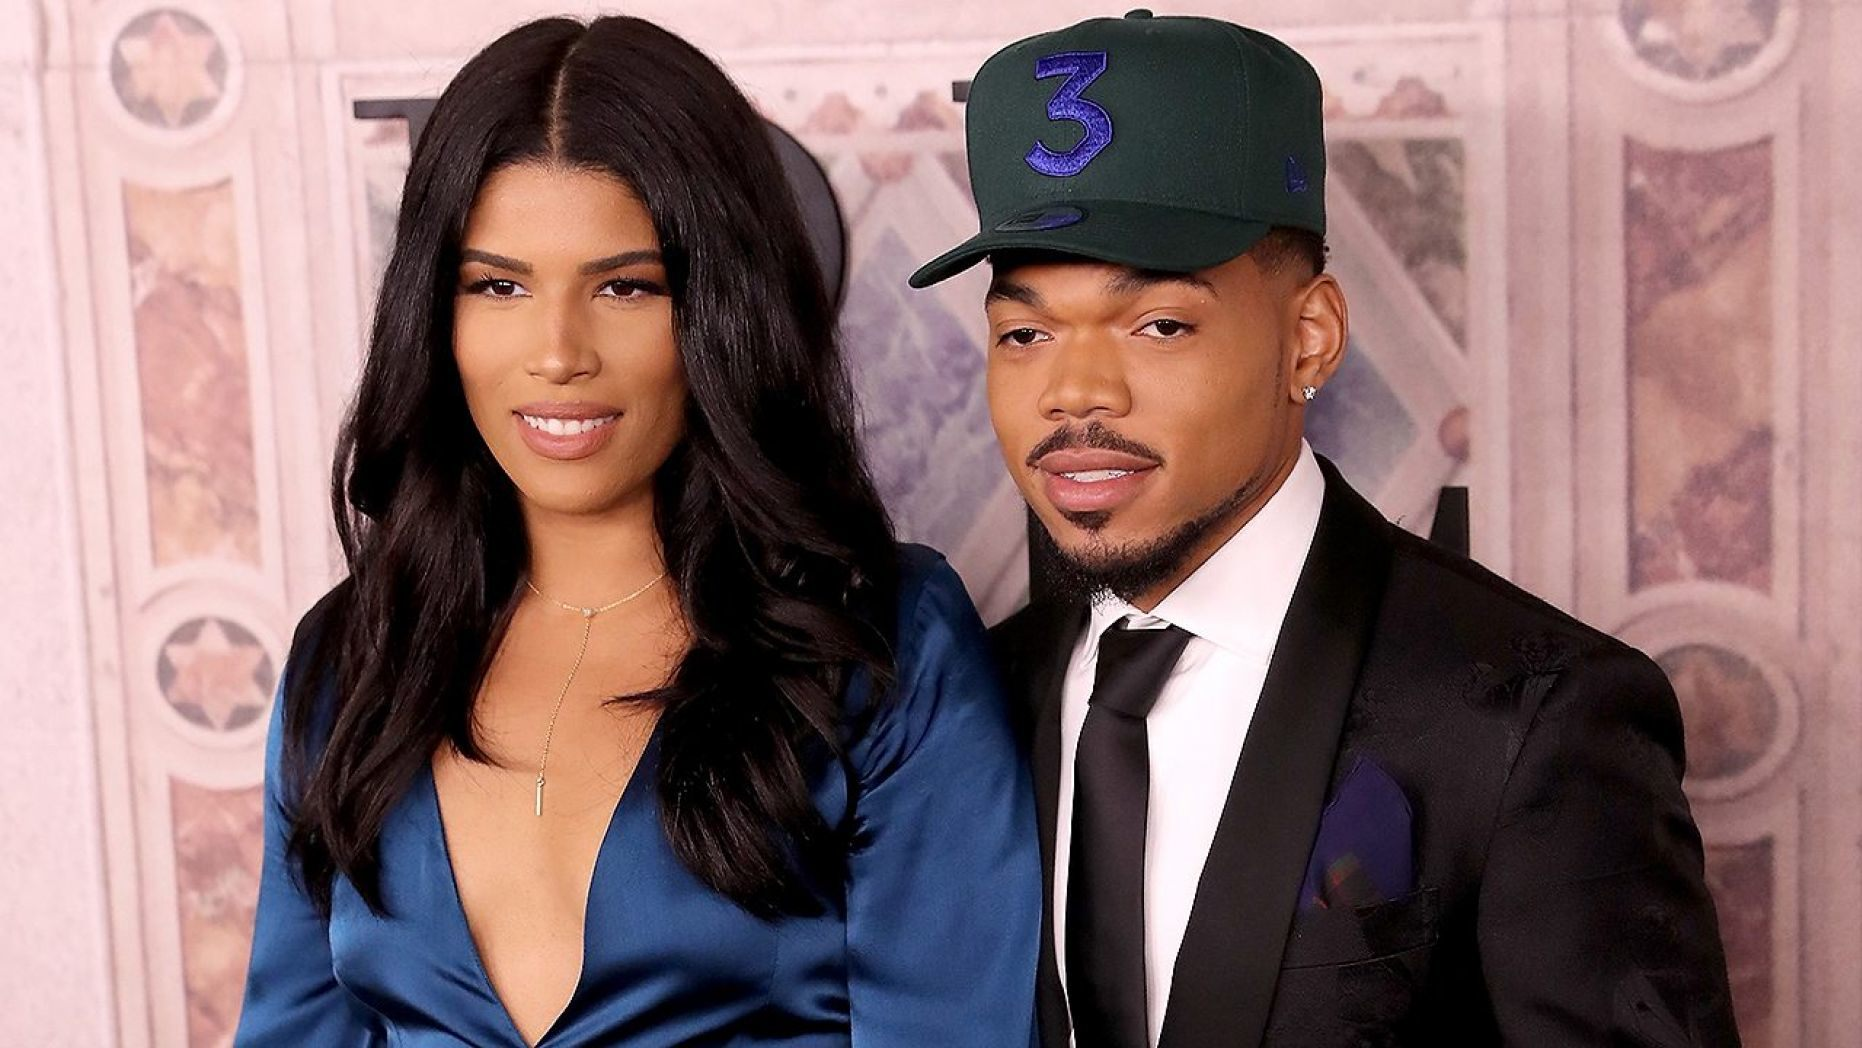 Chance The Rapper ties the Knot with His Fiance that Helped Him Stay Grounded in God